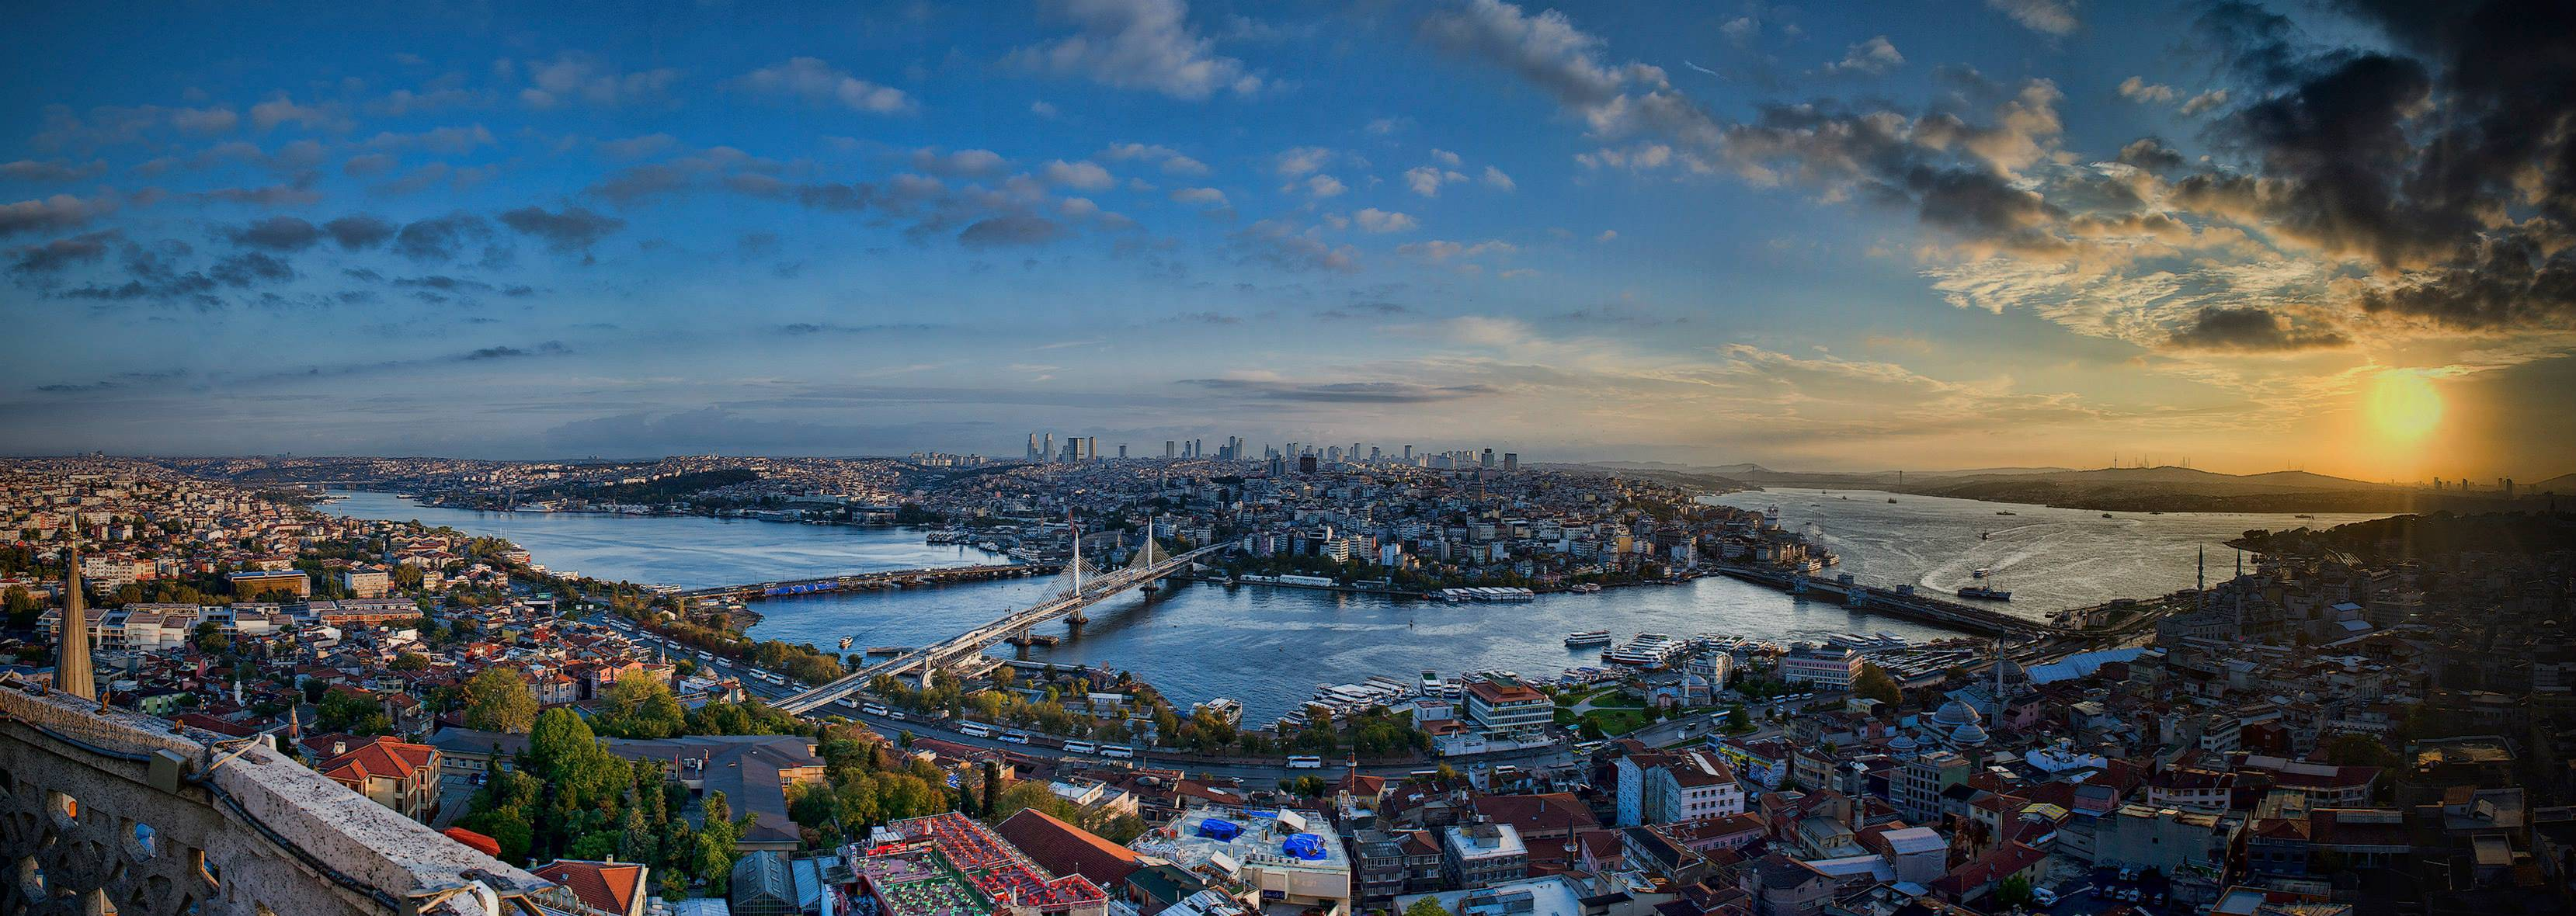 Istanbul Wallpaper For Facebook Full Hd Pictures